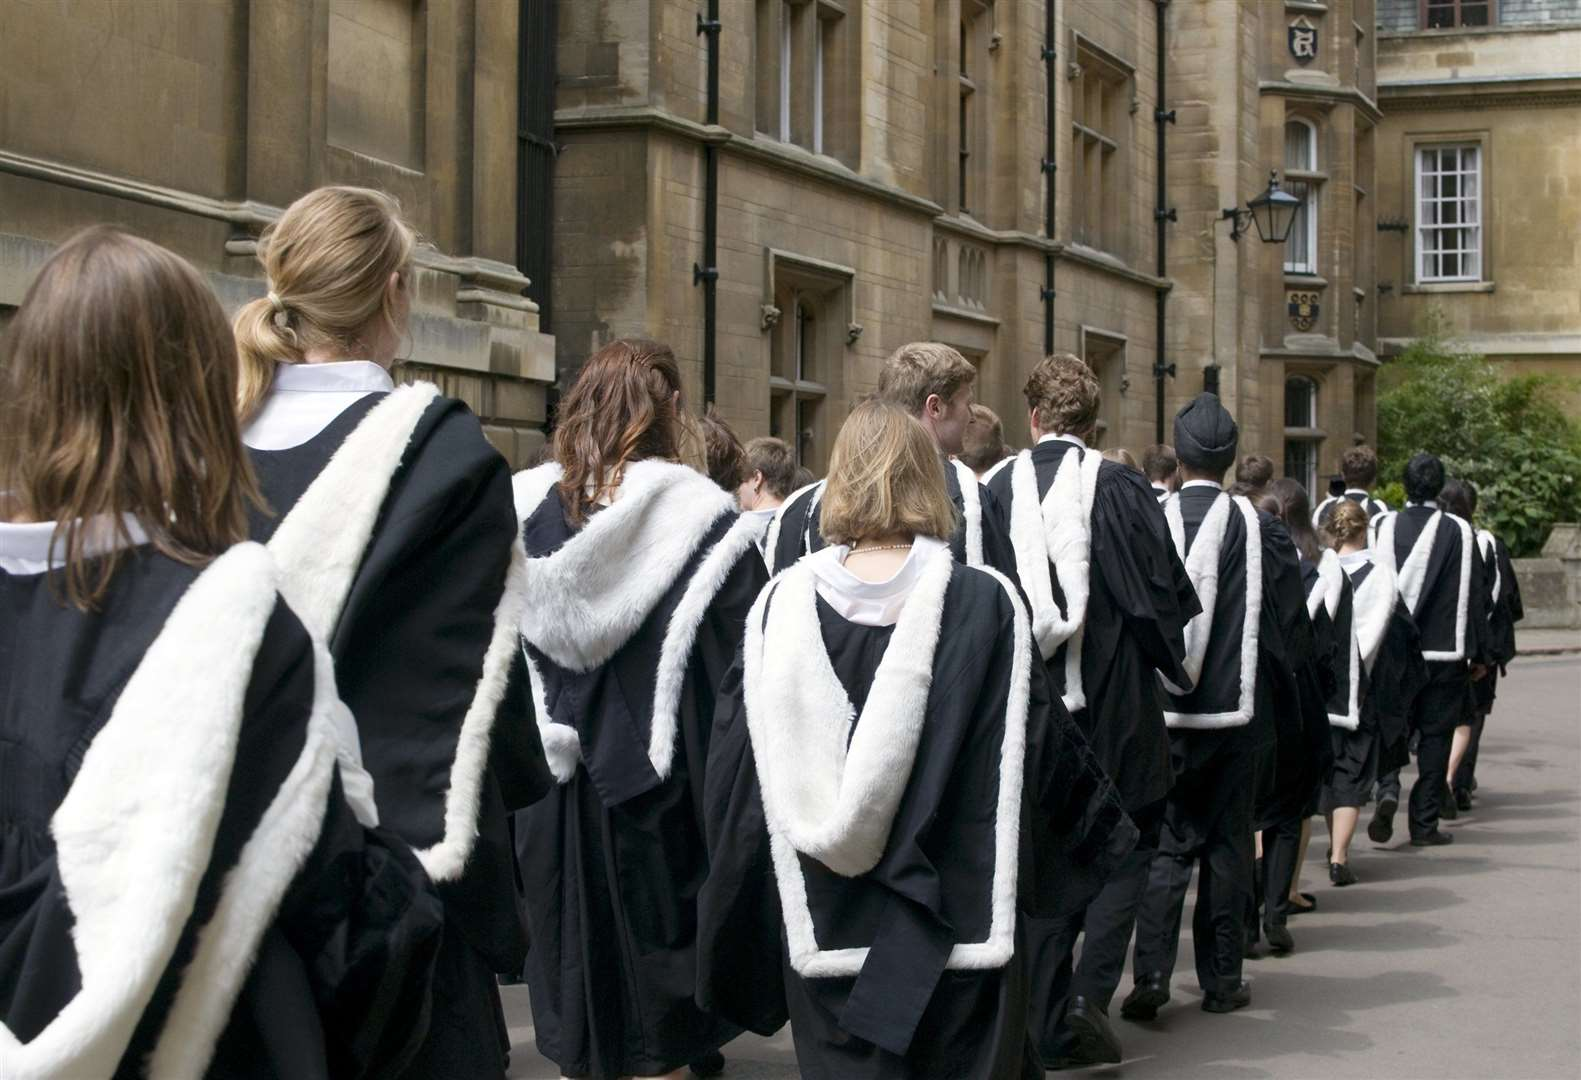 University of Cambridge students from Clare College on graduation day